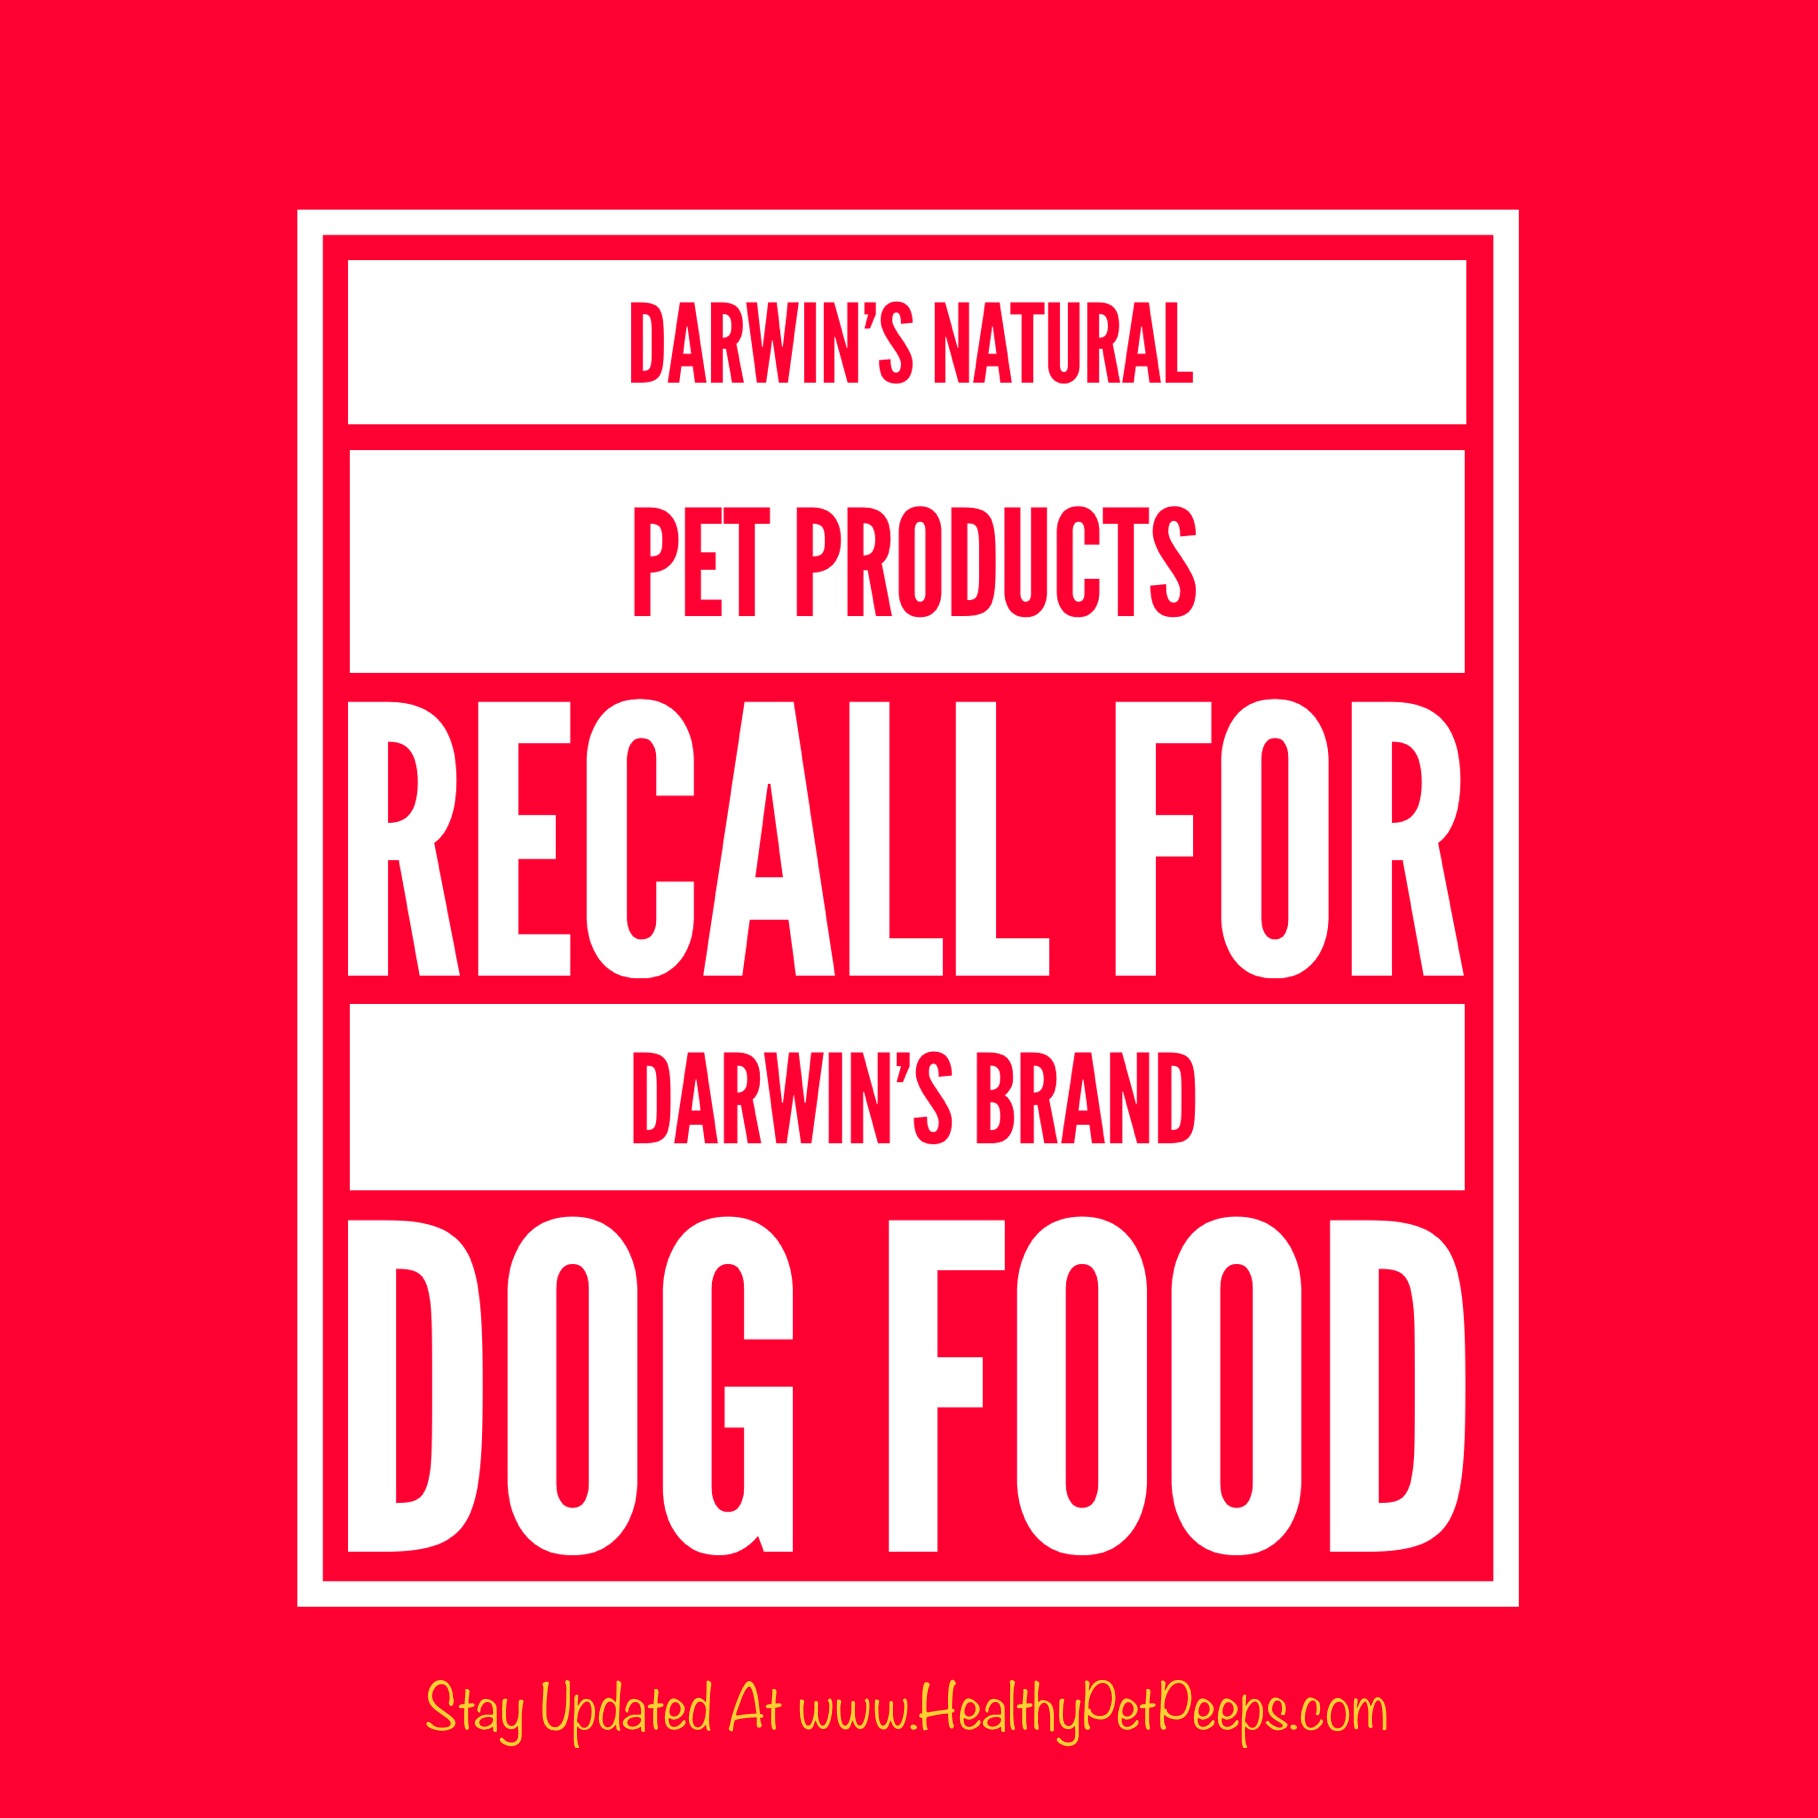 Darwin's Natural Pet Products Issues Voluntary Recalls for